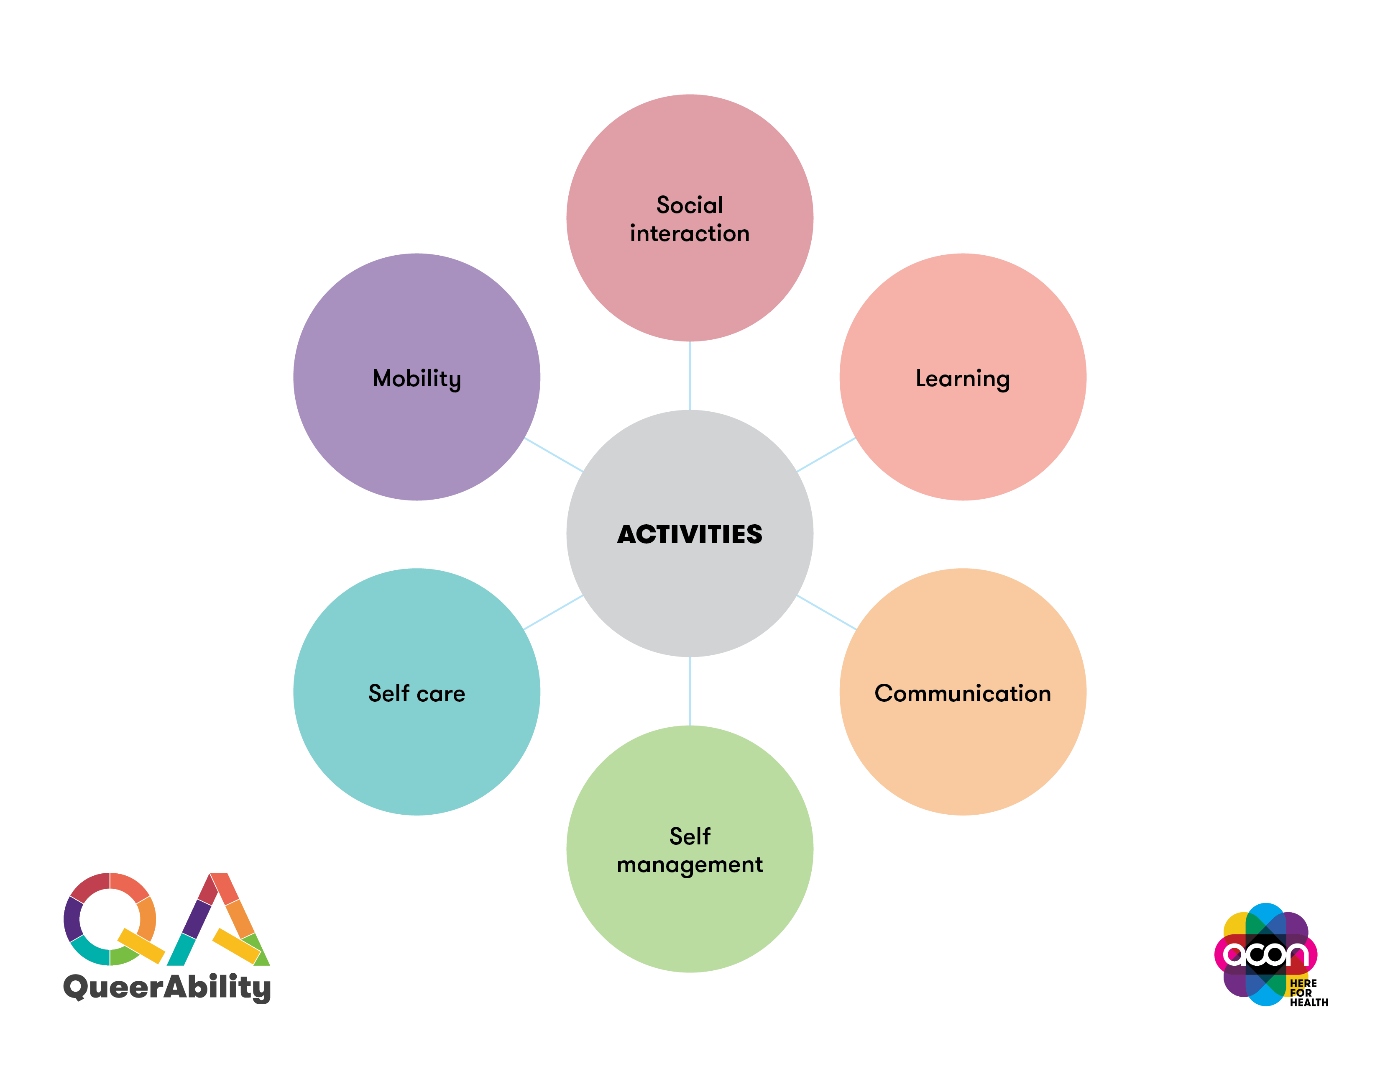 A graph showing 6 round circles with different colours and text, connected to a centralised circle that says activities. The six circles contains individual wording of Mobility, Social interaction, Learning, Communication, Self management, and self care.